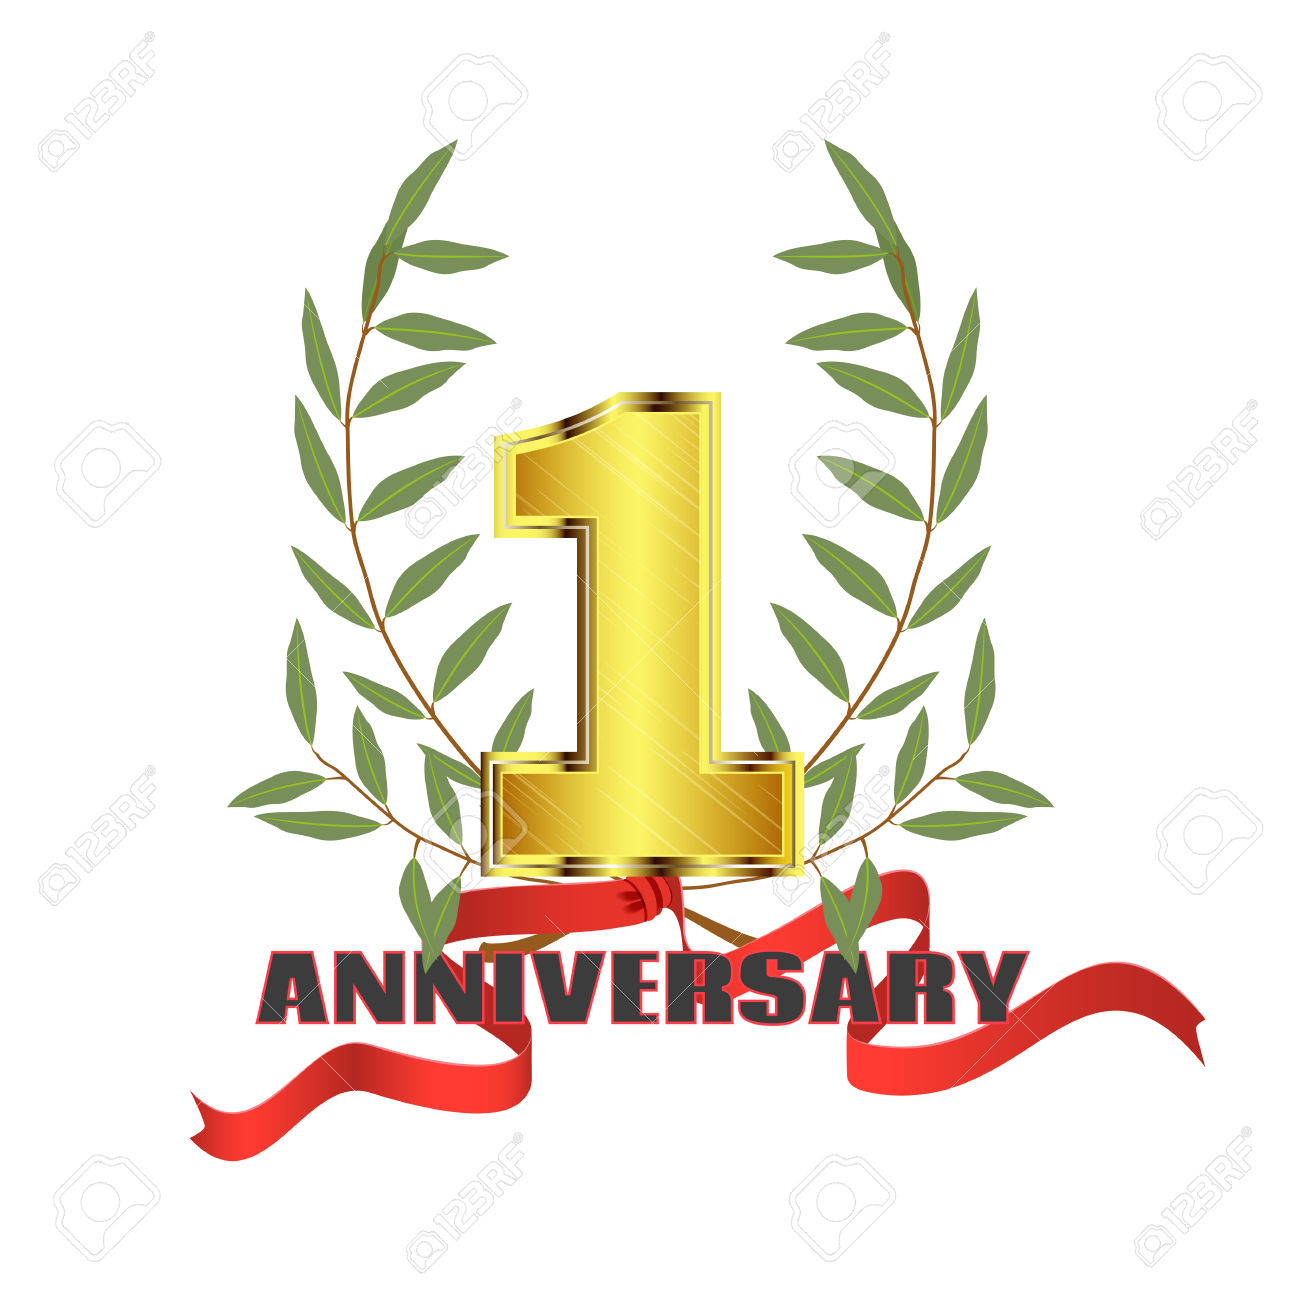 Anniversary clipart ribbon. One year collection online